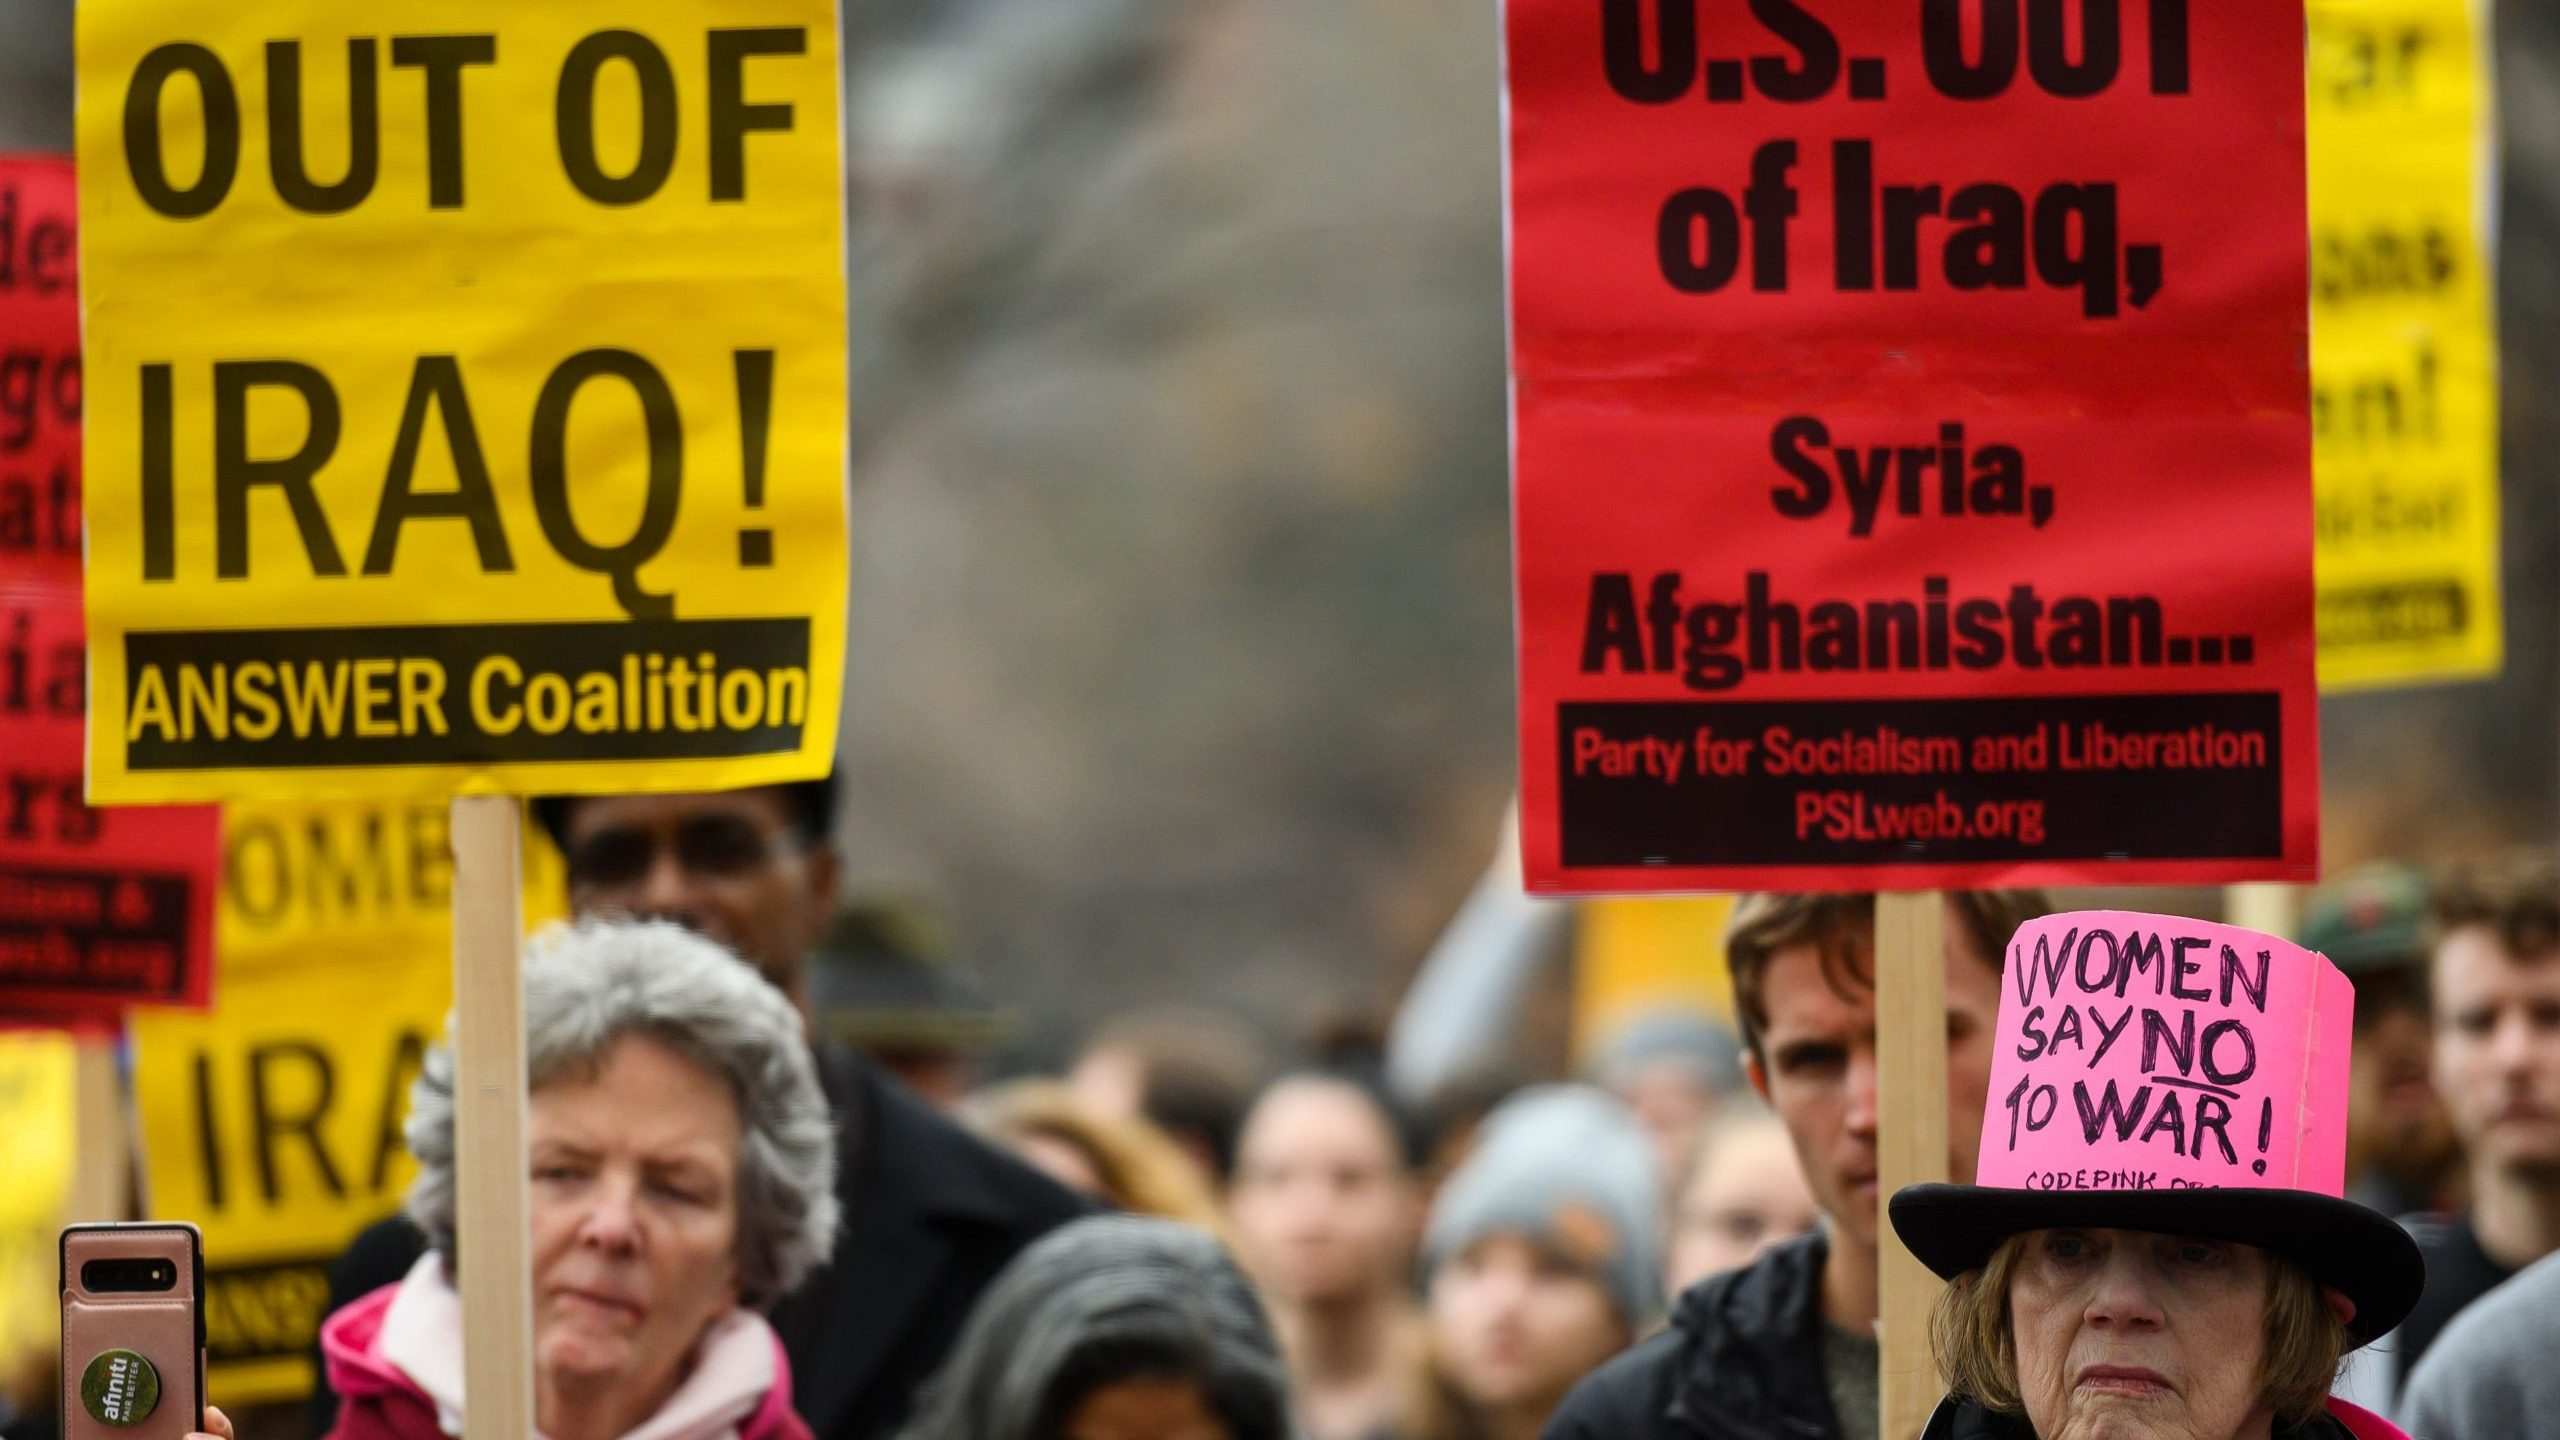 Anti-war activists march from the White House to the Trump International Hotel in Washington, DC, on Jan. 4, 2020. (Credit: Andrew Caballero-Reynolds / AFP / Getty Images)